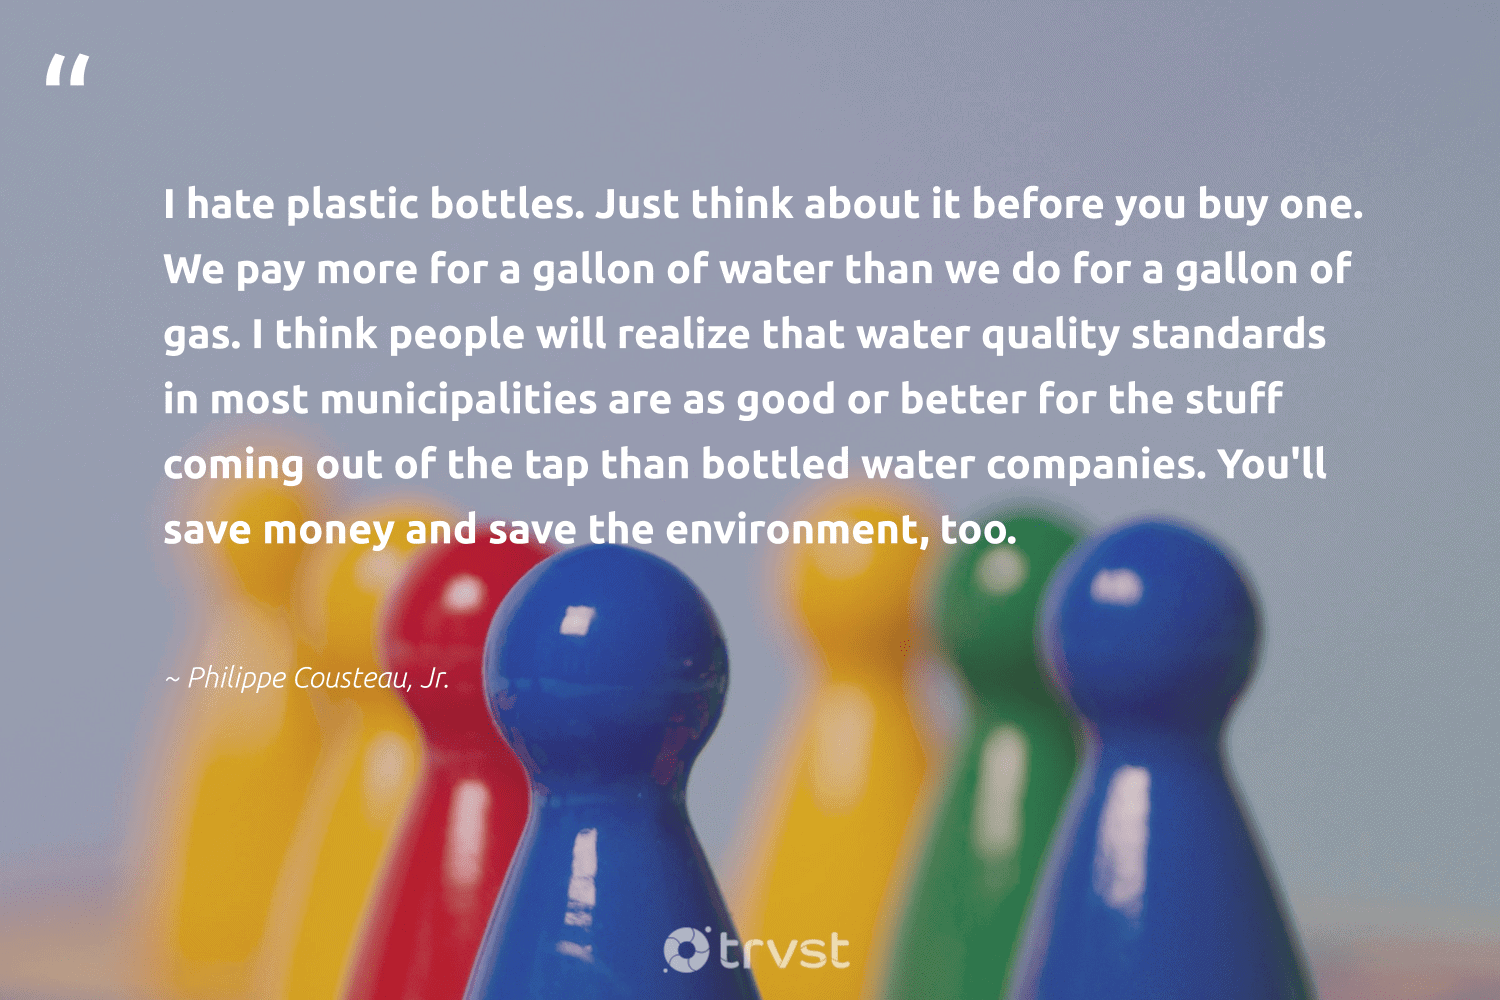 """""""I hate plastic bottles. Just think about it before you buy one. We pay more for a gallon of water than we do for a gallon of gas. I think people will realize that water quality standards in most municipalities are as good or better for the stuff coming out of the tap than bottled water companies. You'll save money and save the environment, too.""""  - Philippe Cousteau, Jr. #trvst #quotes #plasticwaste #environment #plastic #gas #water #banthebag #greenliving #noplanetb #bethechange #plasticplanet"""